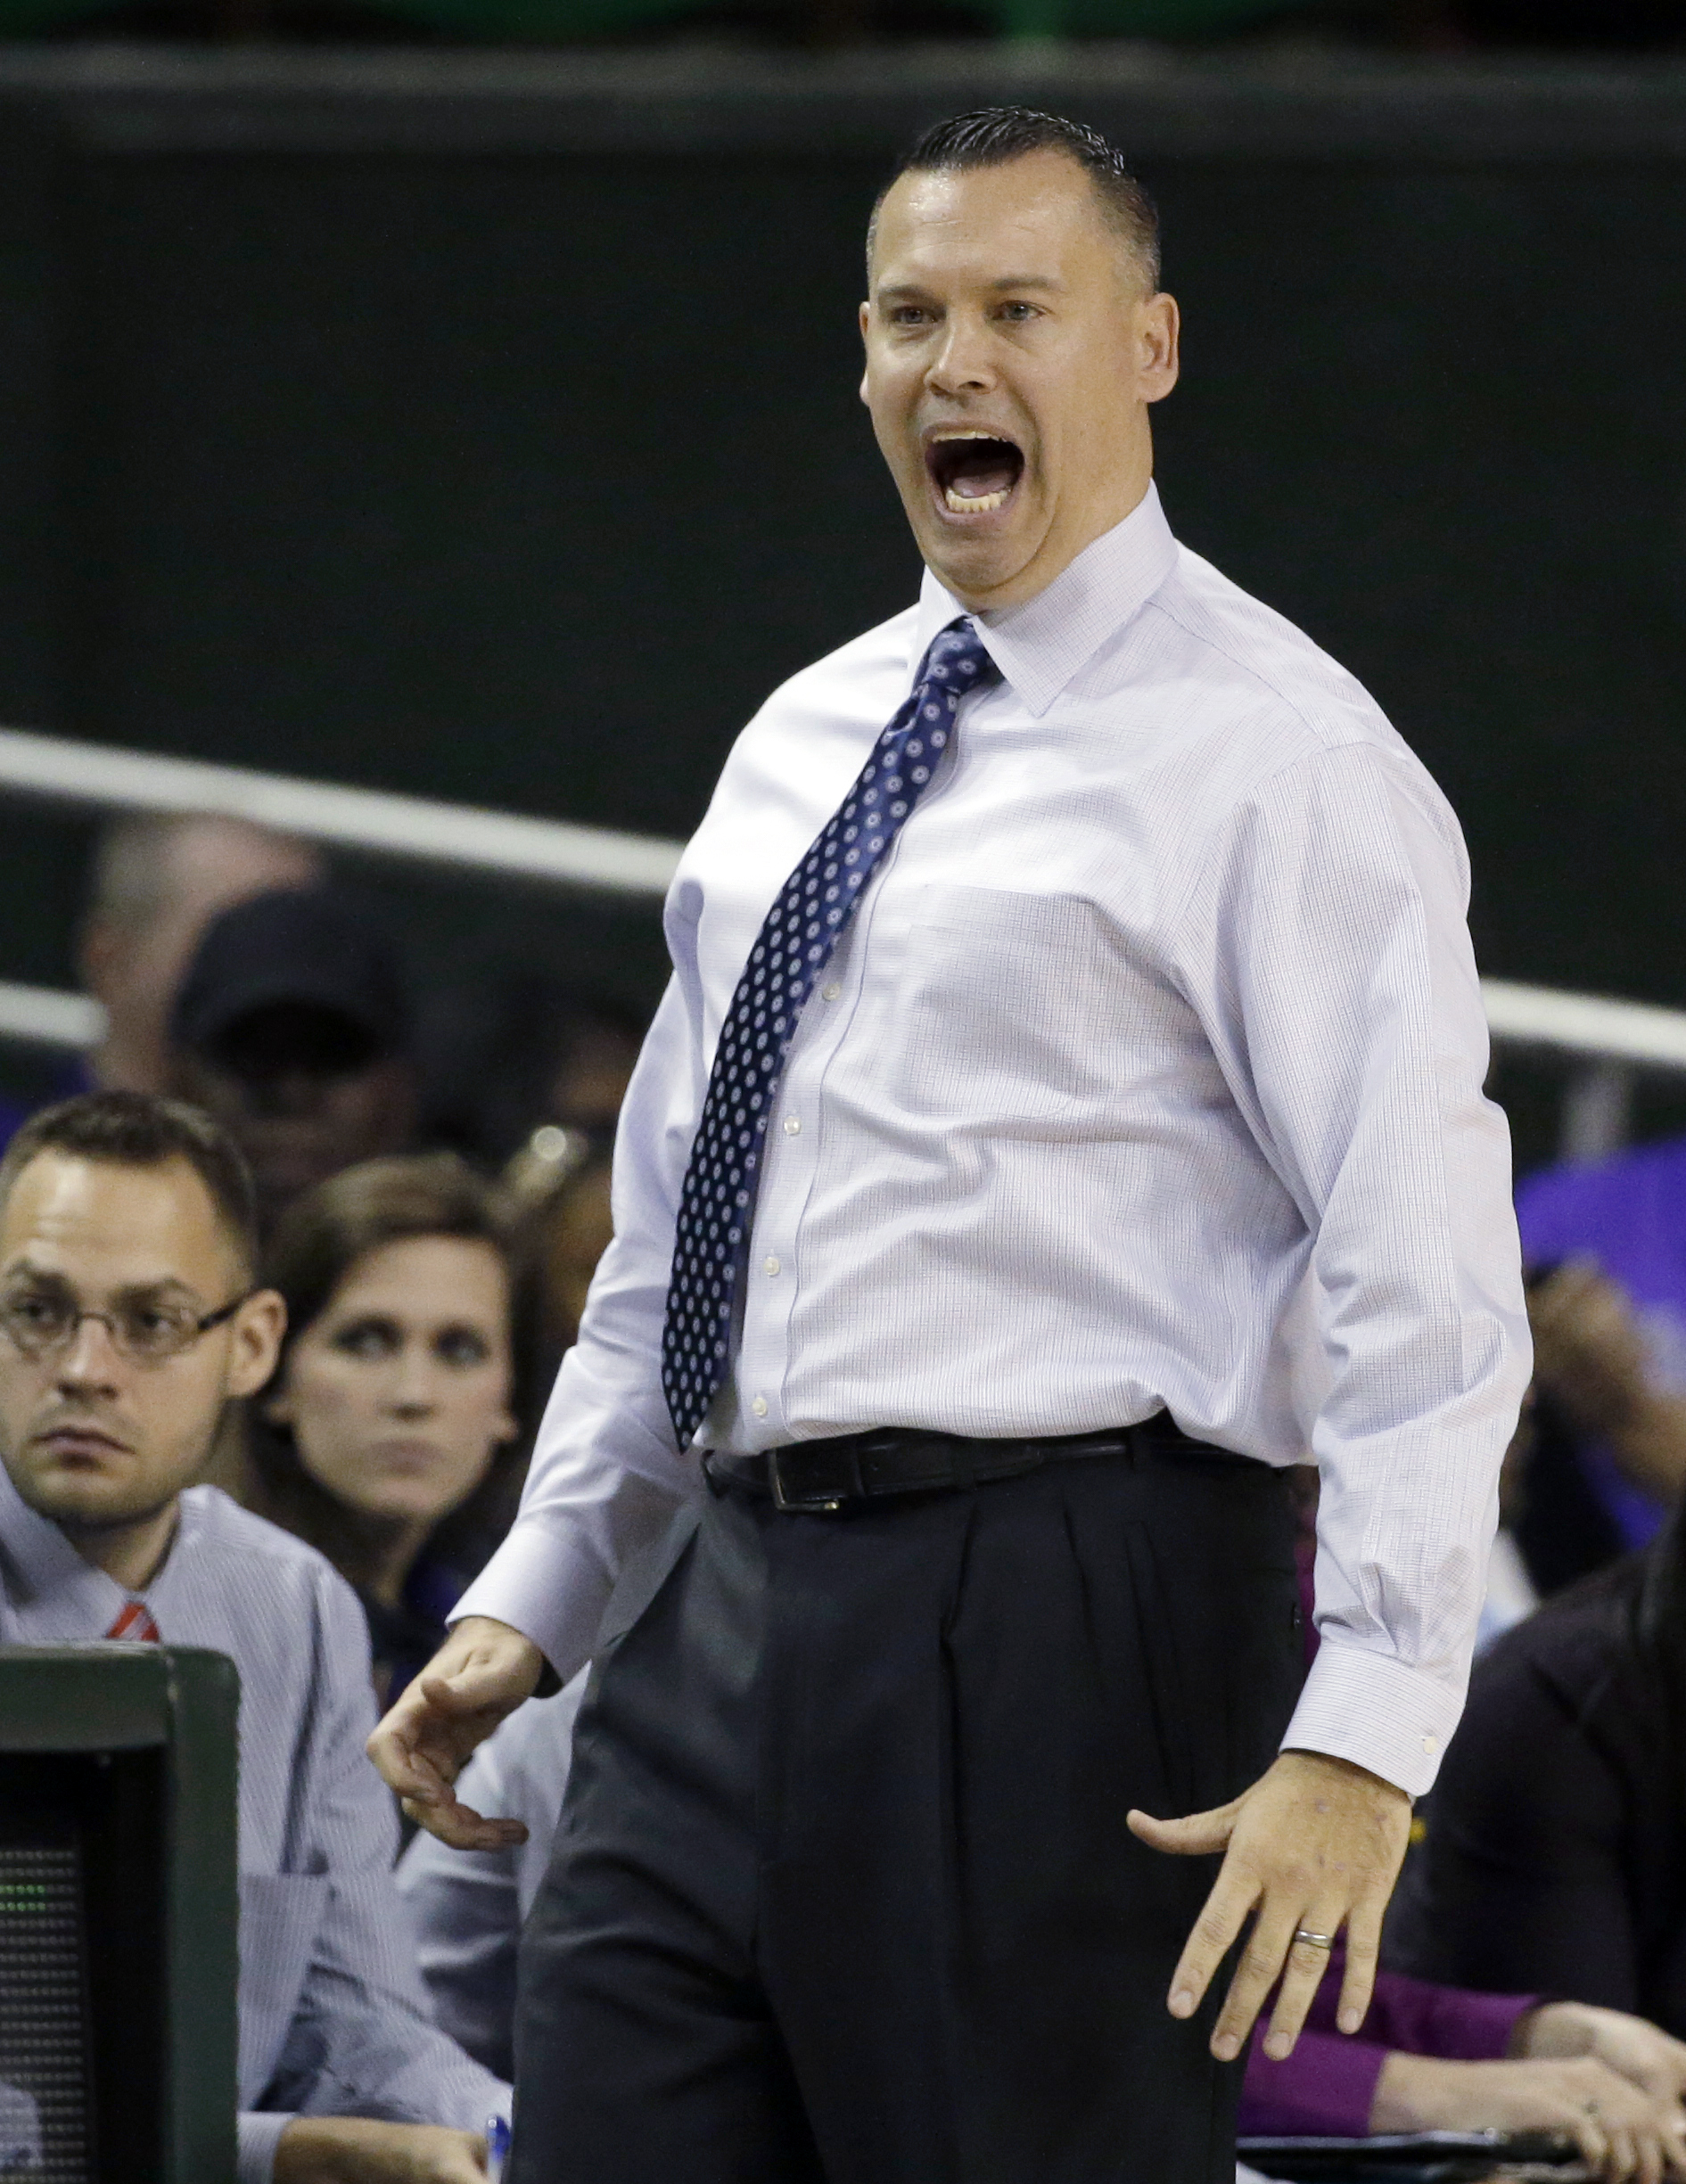 Stephen F. Austin head coach Brandon Schneider shouts adjustments to his team's defense in the second half of an NCAA college basketball game against Baylor, Sunday, Dec. 14, 2014, in Waco, Texas. (AP Photo/Tony Gutierrez)